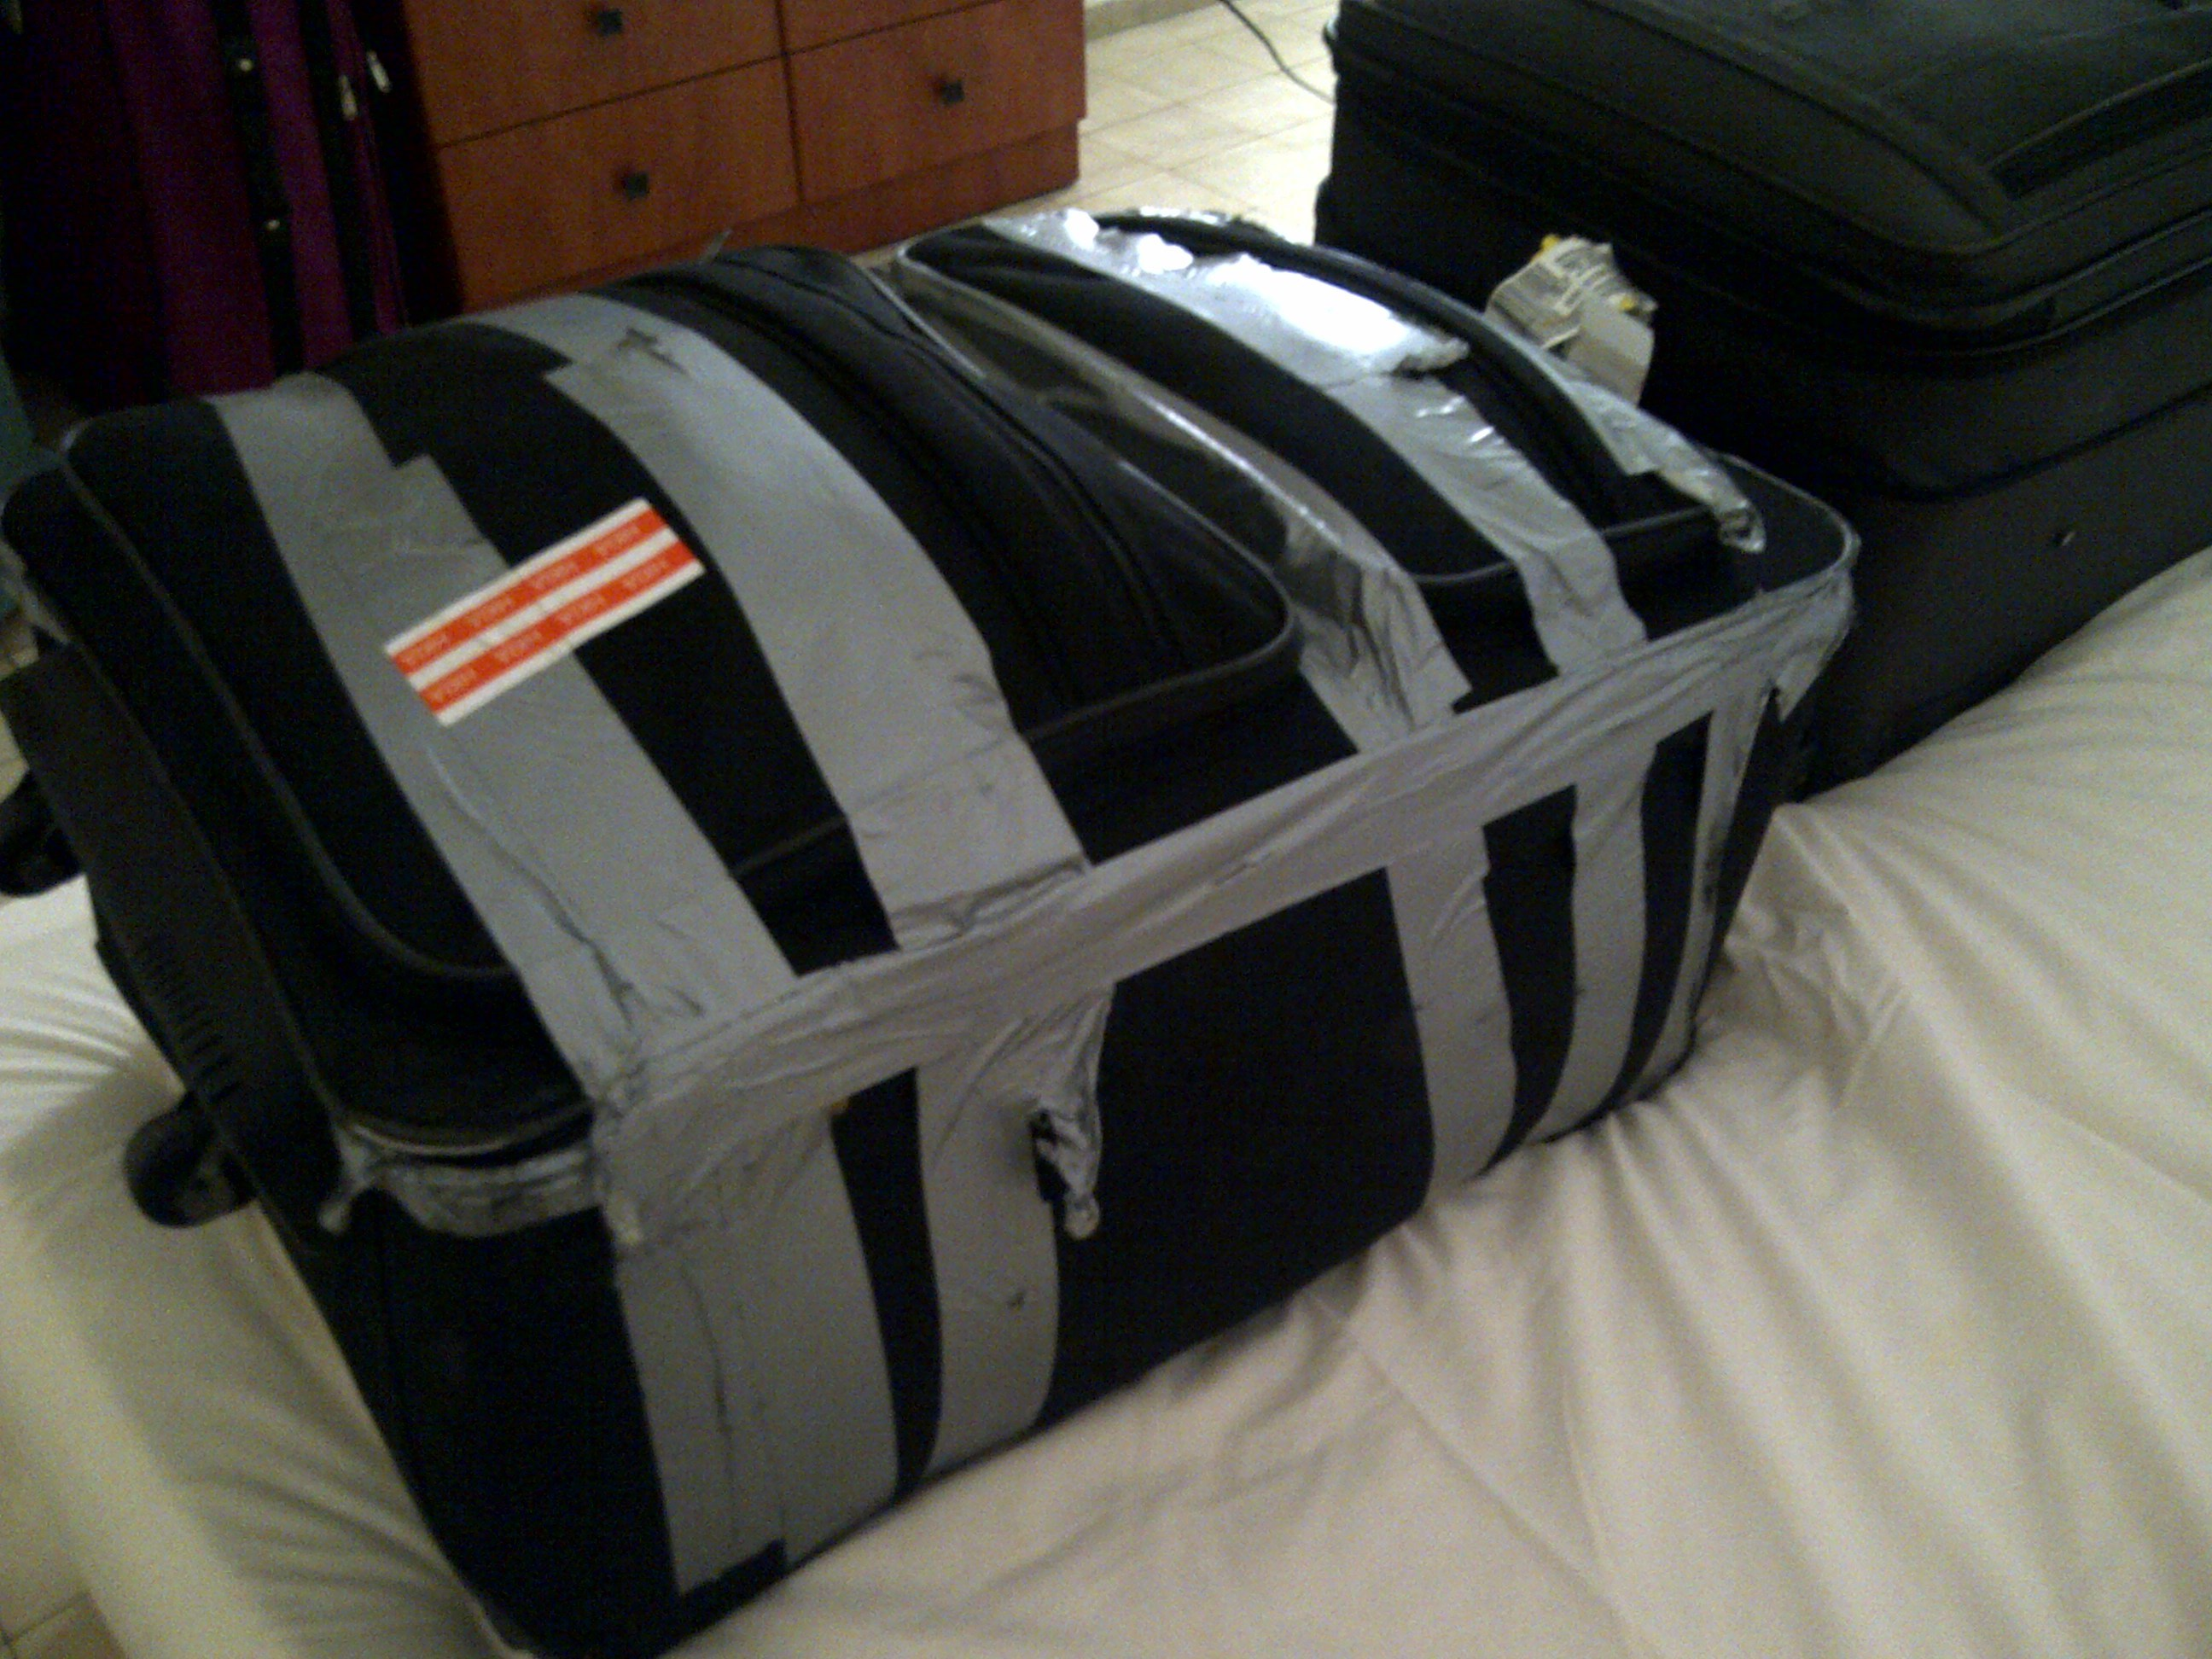 Luggage And Shoe Repair